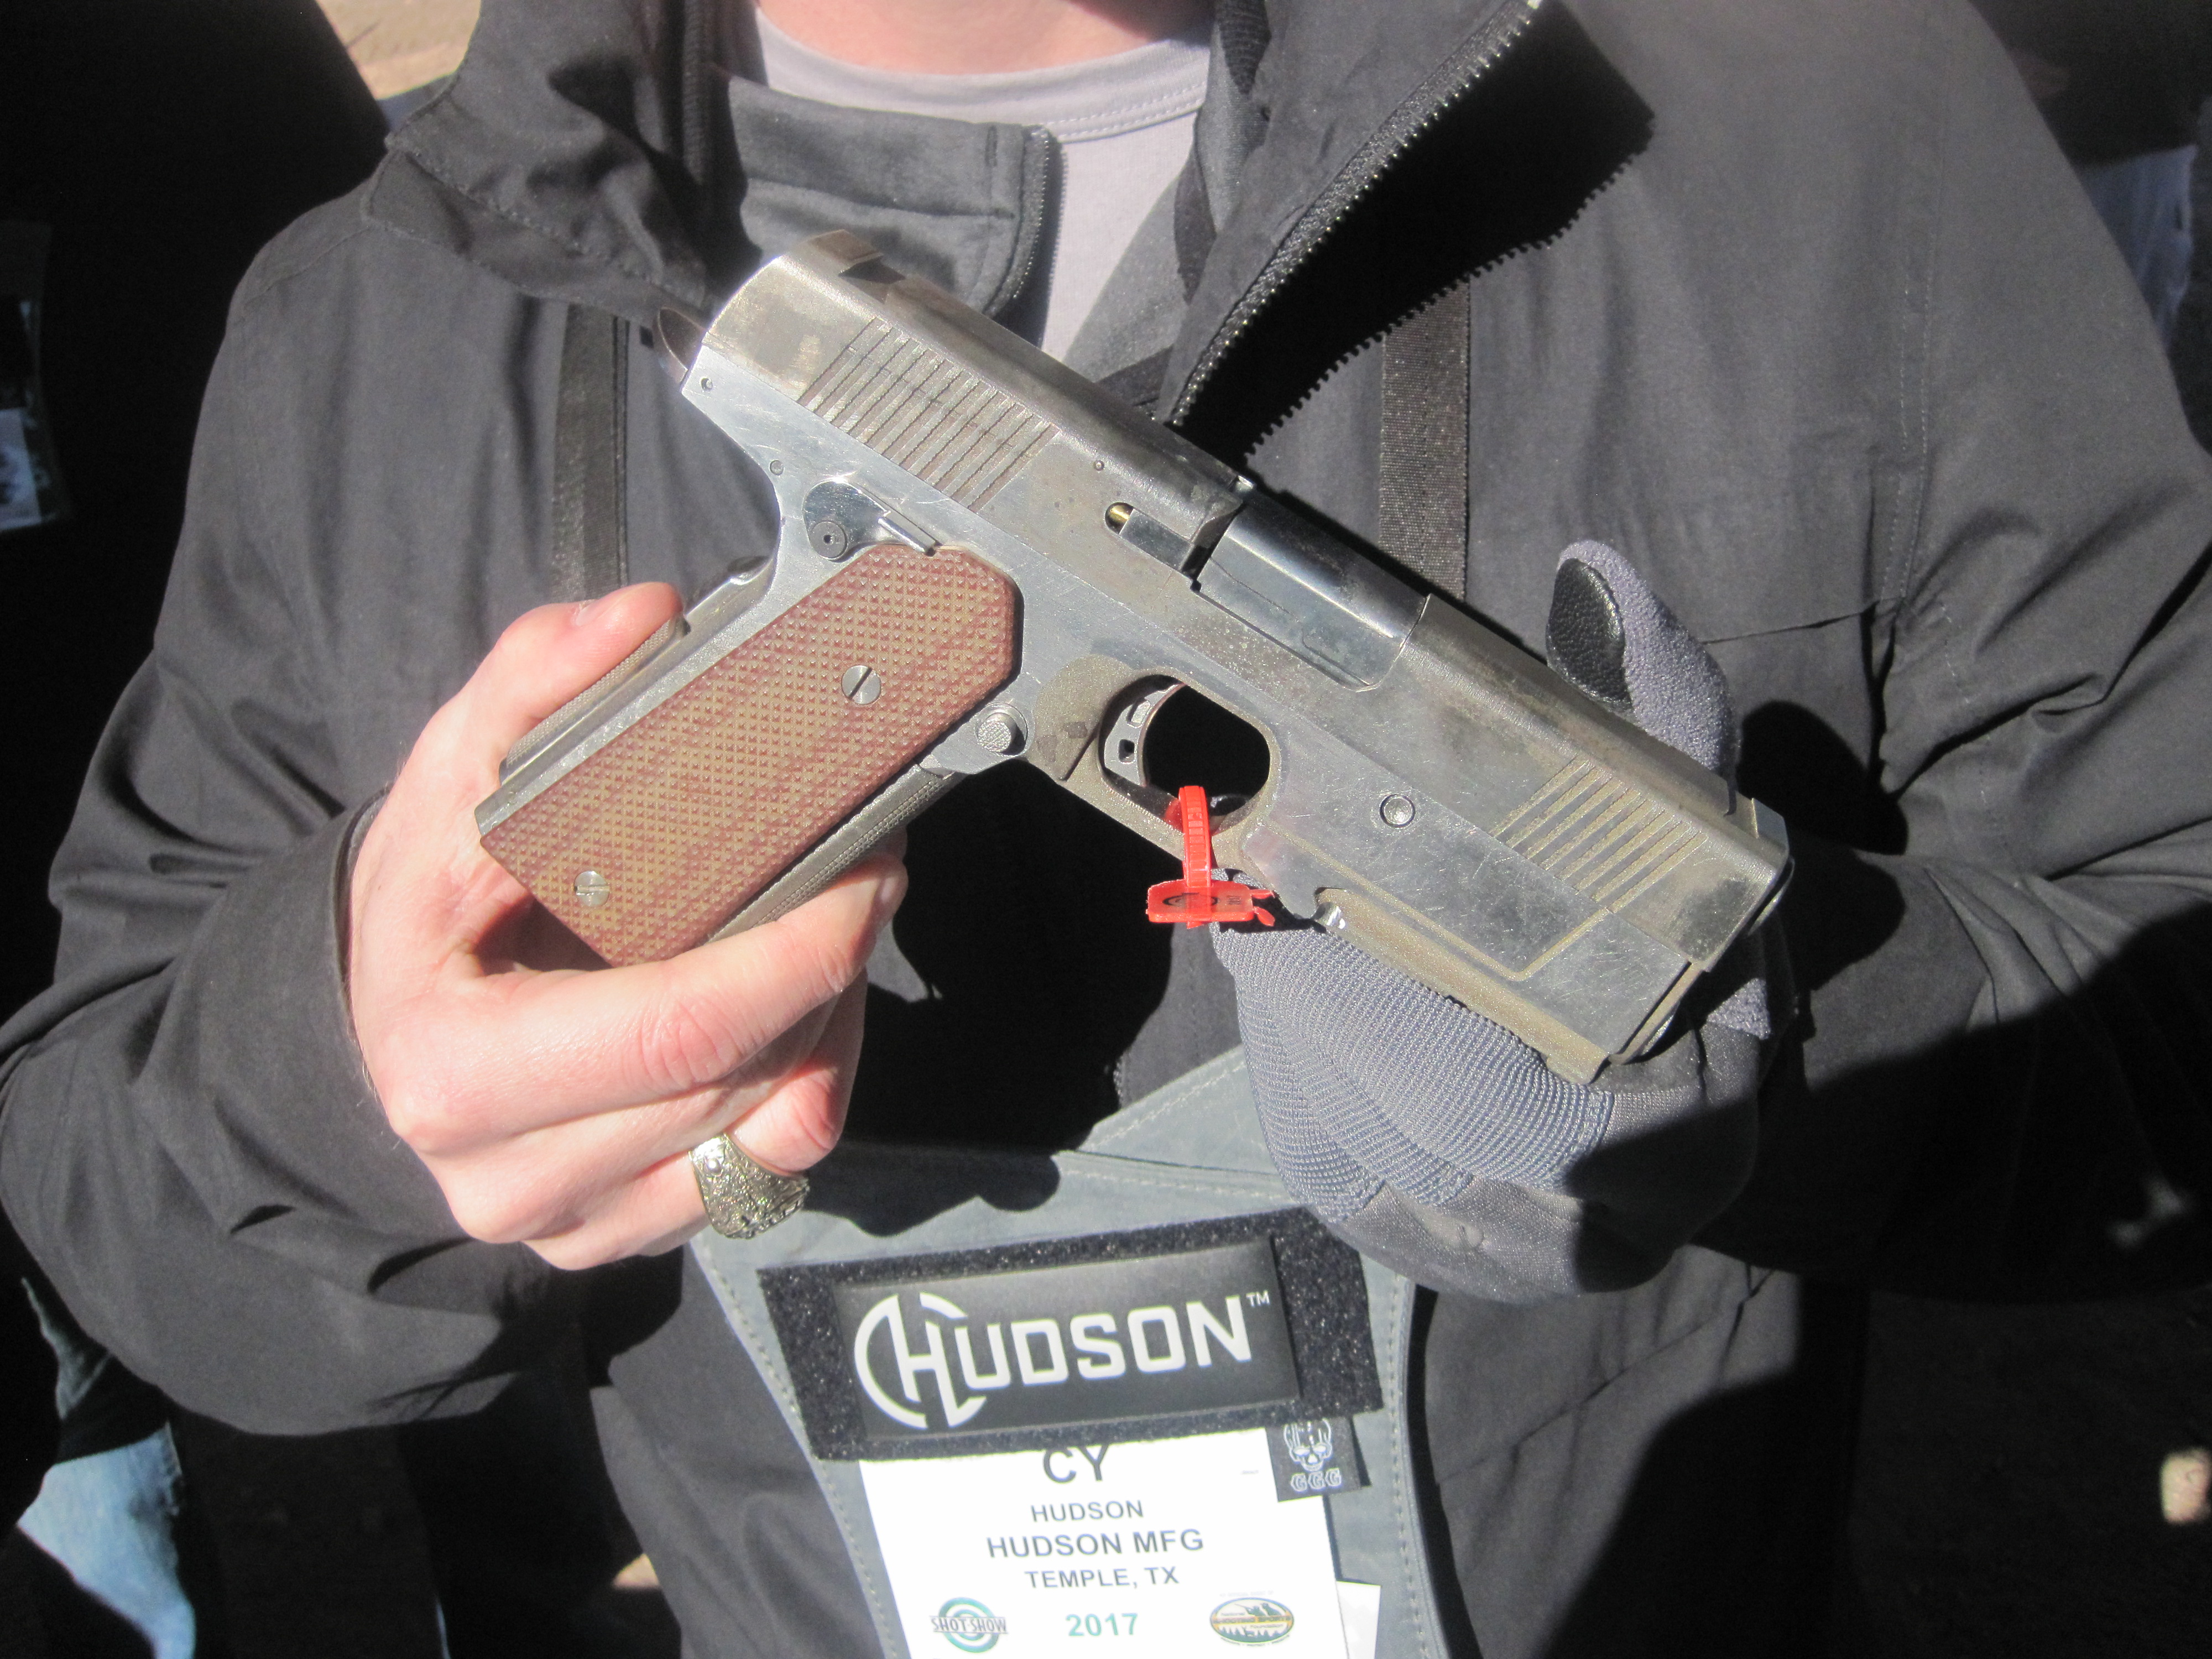 """The prototype Hudson H9 was known as """"The Brick"""" inside the company."""